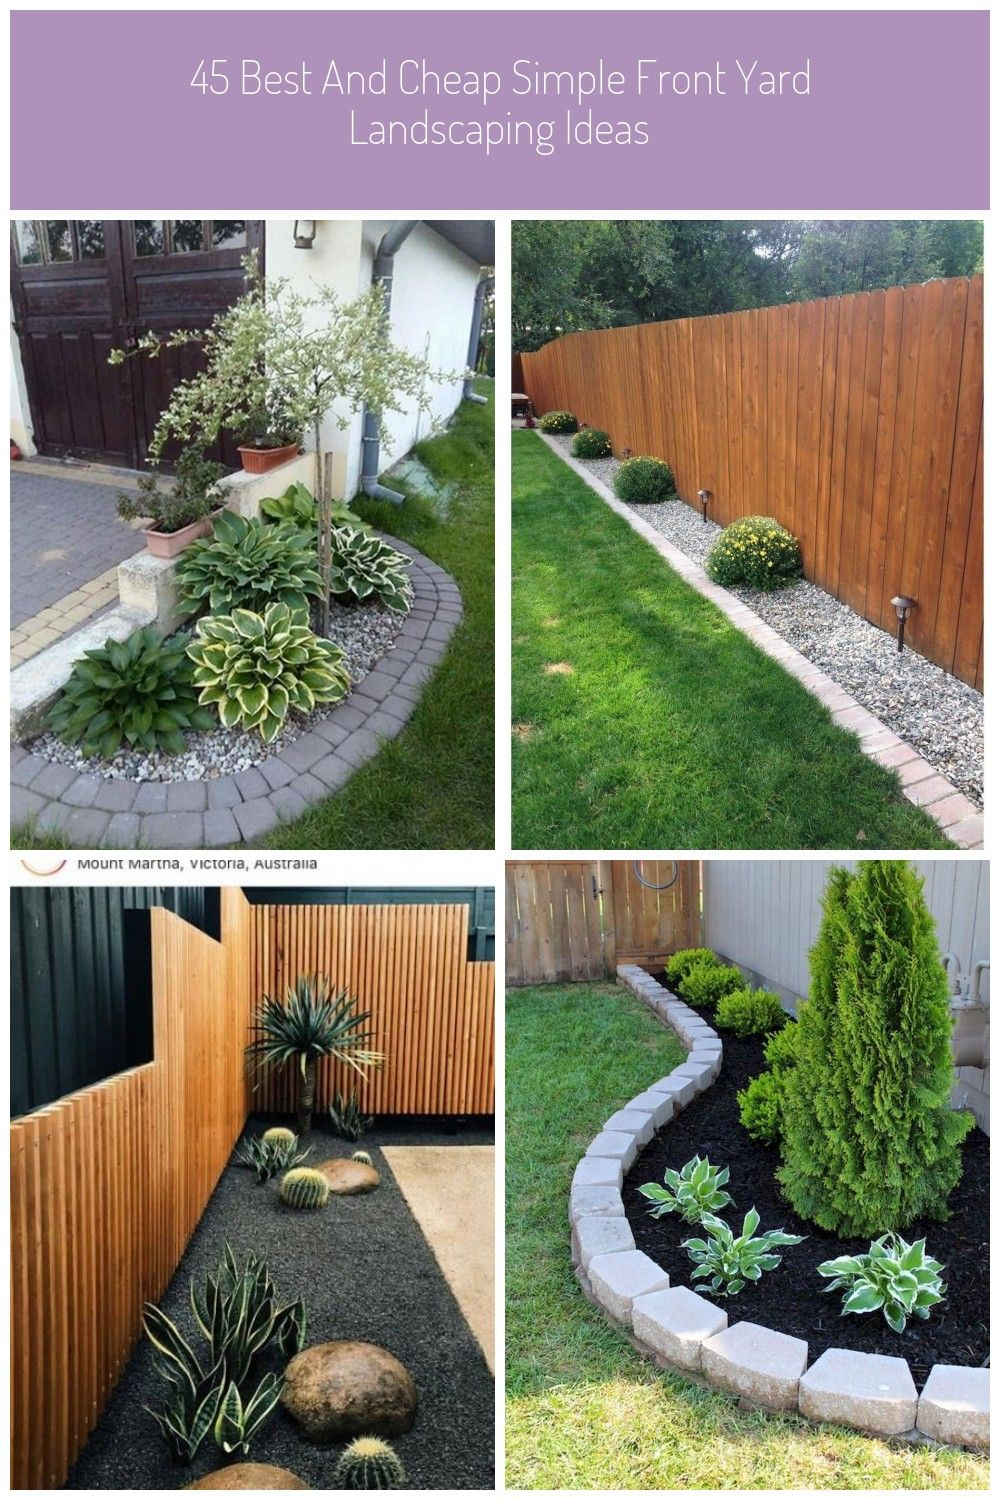 45 Best And Cheap Simple Front Yard Landscaping Ideas 47 Simple Landscaping 45 Best And Cheap Cheap Landscaping Ideas Yard Landscaping Front Yard Landscaping